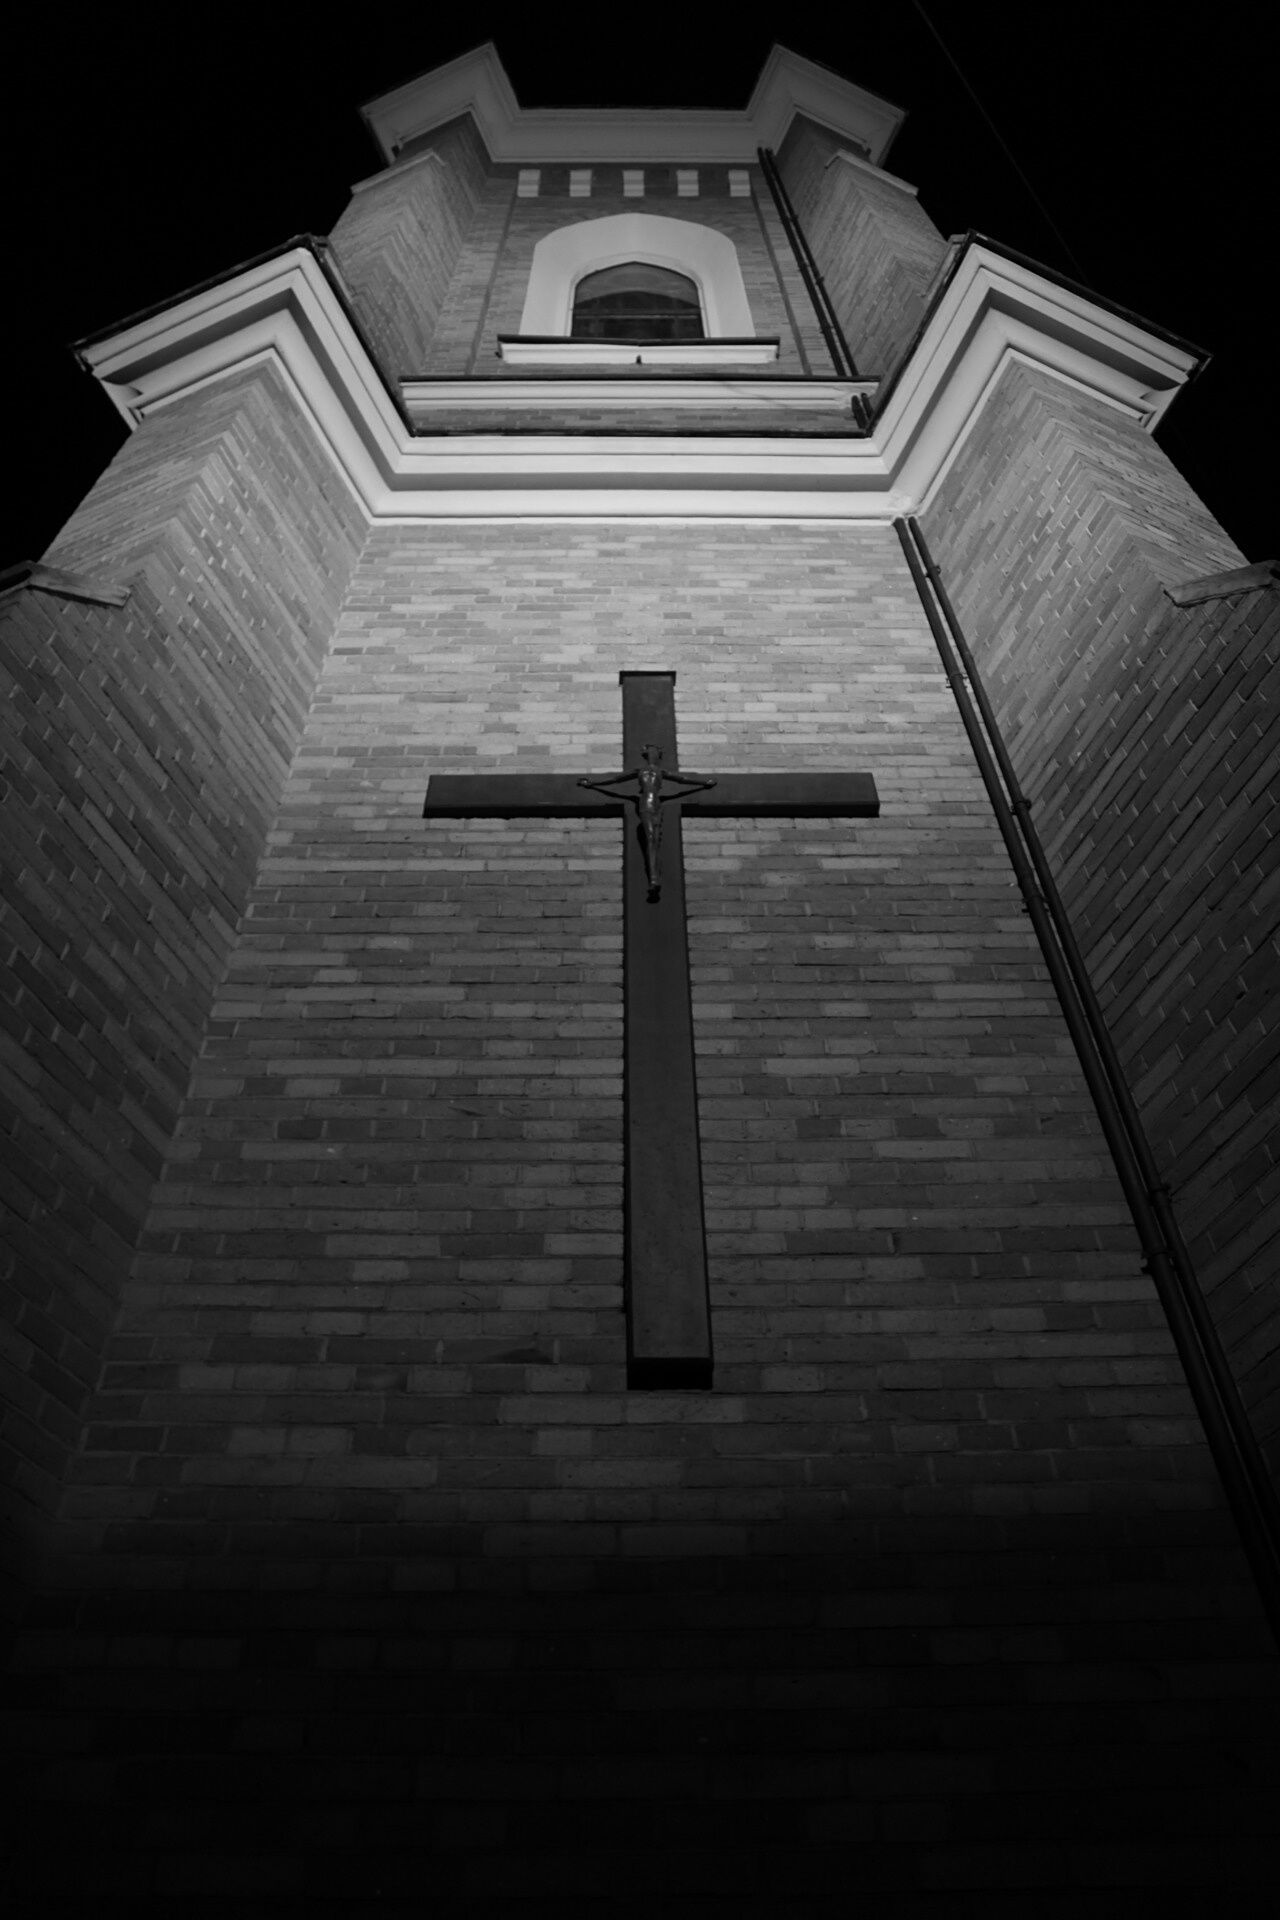 Religion Night No People Building Exterior Architecture Built Structure Spirituality Outdoors Low Angle View Nightphotography Blackandwhite Jesus Best EyeEm Shot EyeEmNewHere Canonphotography Place Of Worship Cultures Cross Crusifixion EyeEm Best Shots - Black + White Warsaw Poland Costel Church